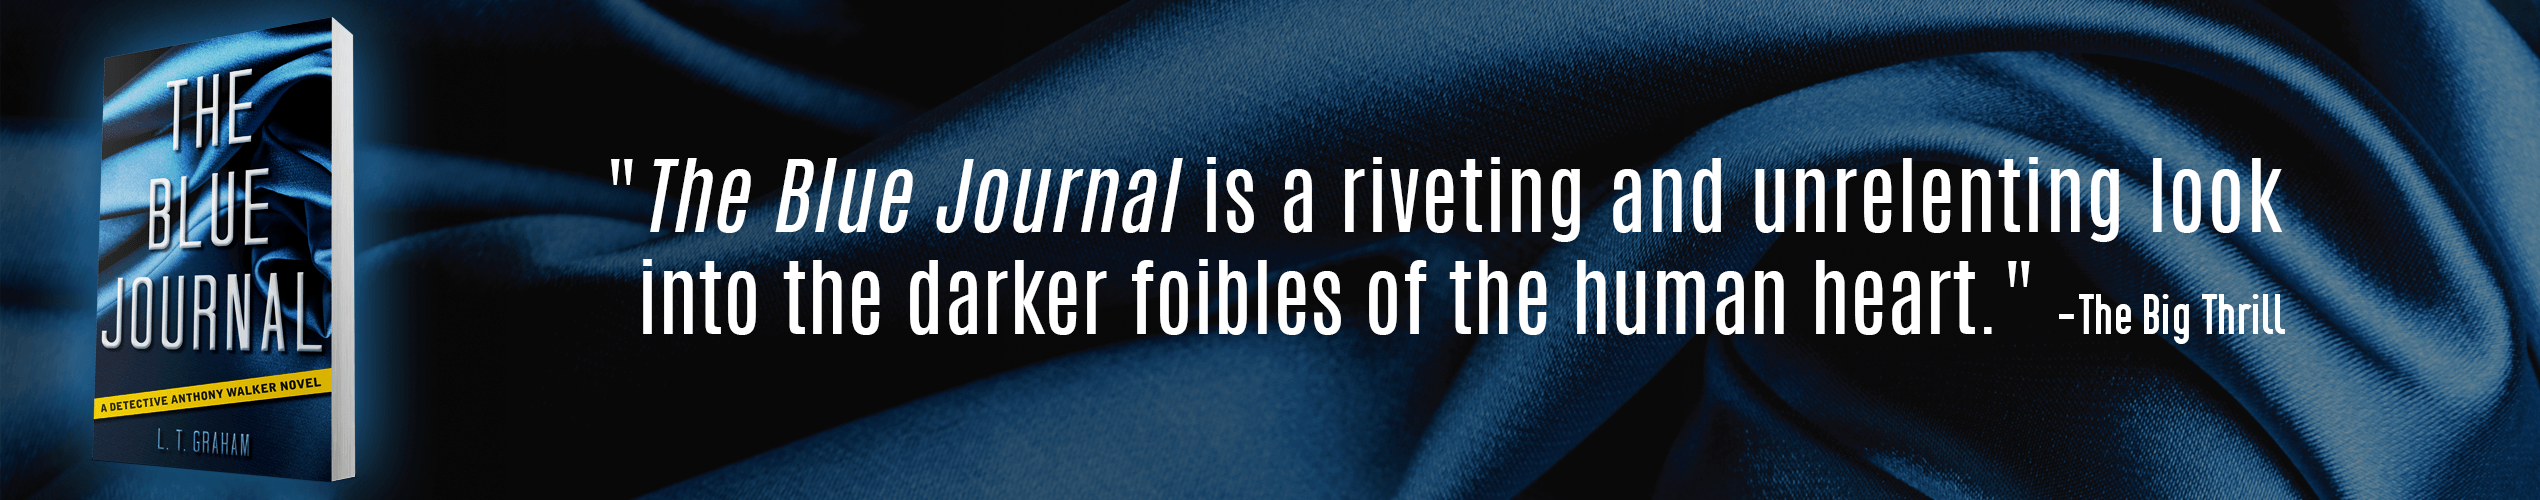 The Big Thrill Book Review of The Blue Journal